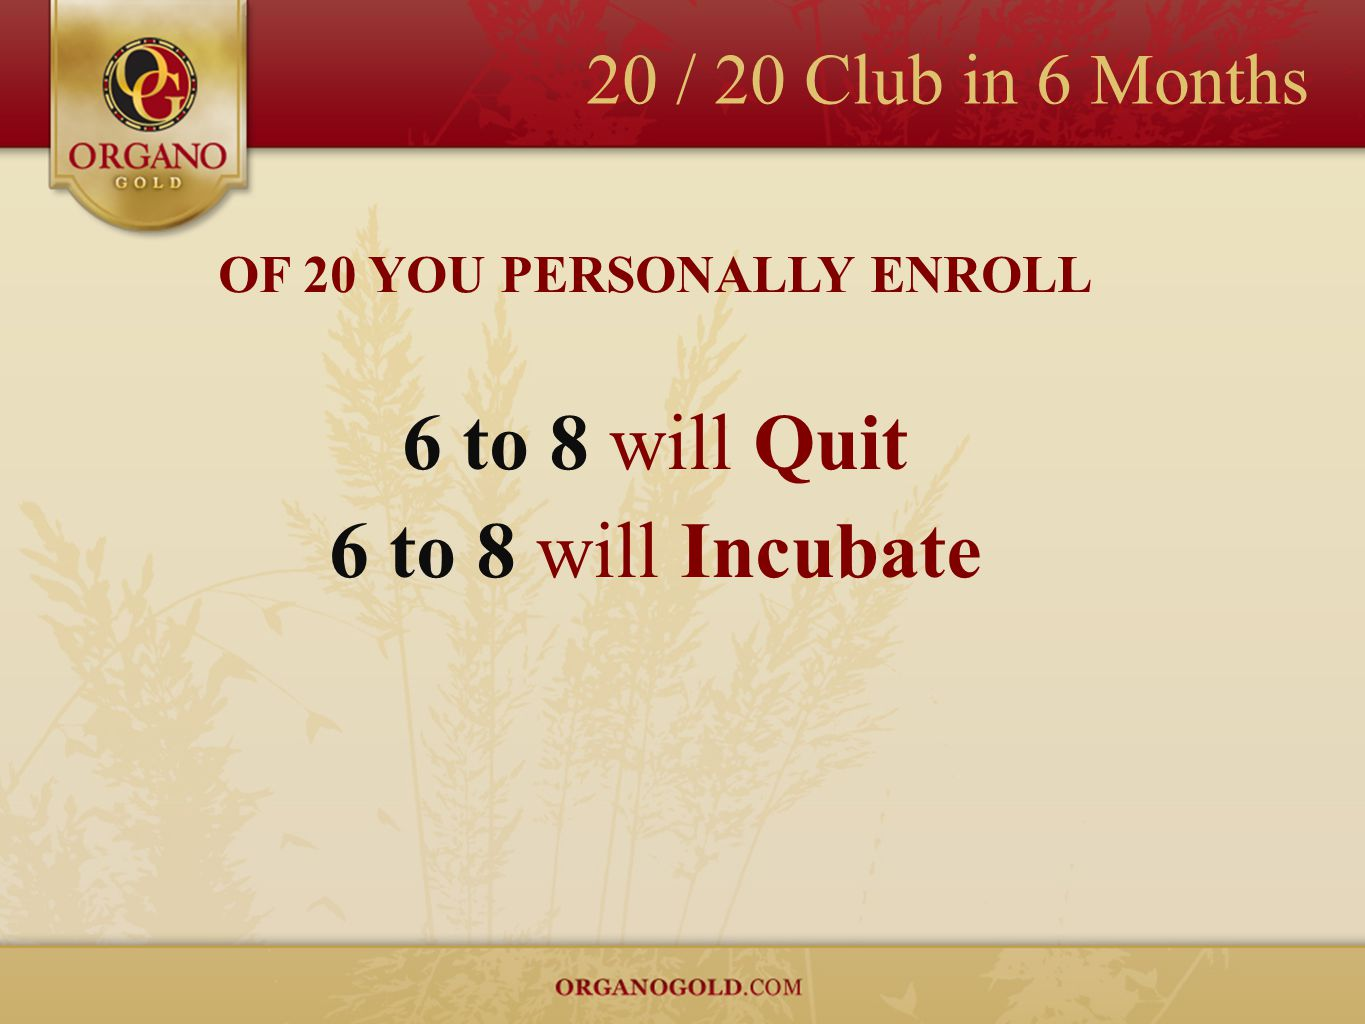 20 / 20 Club in 6 Months OF 20 YOU PERSONALLY ENROLL 6 to 8 will Quit 6 to 8 will Incubate